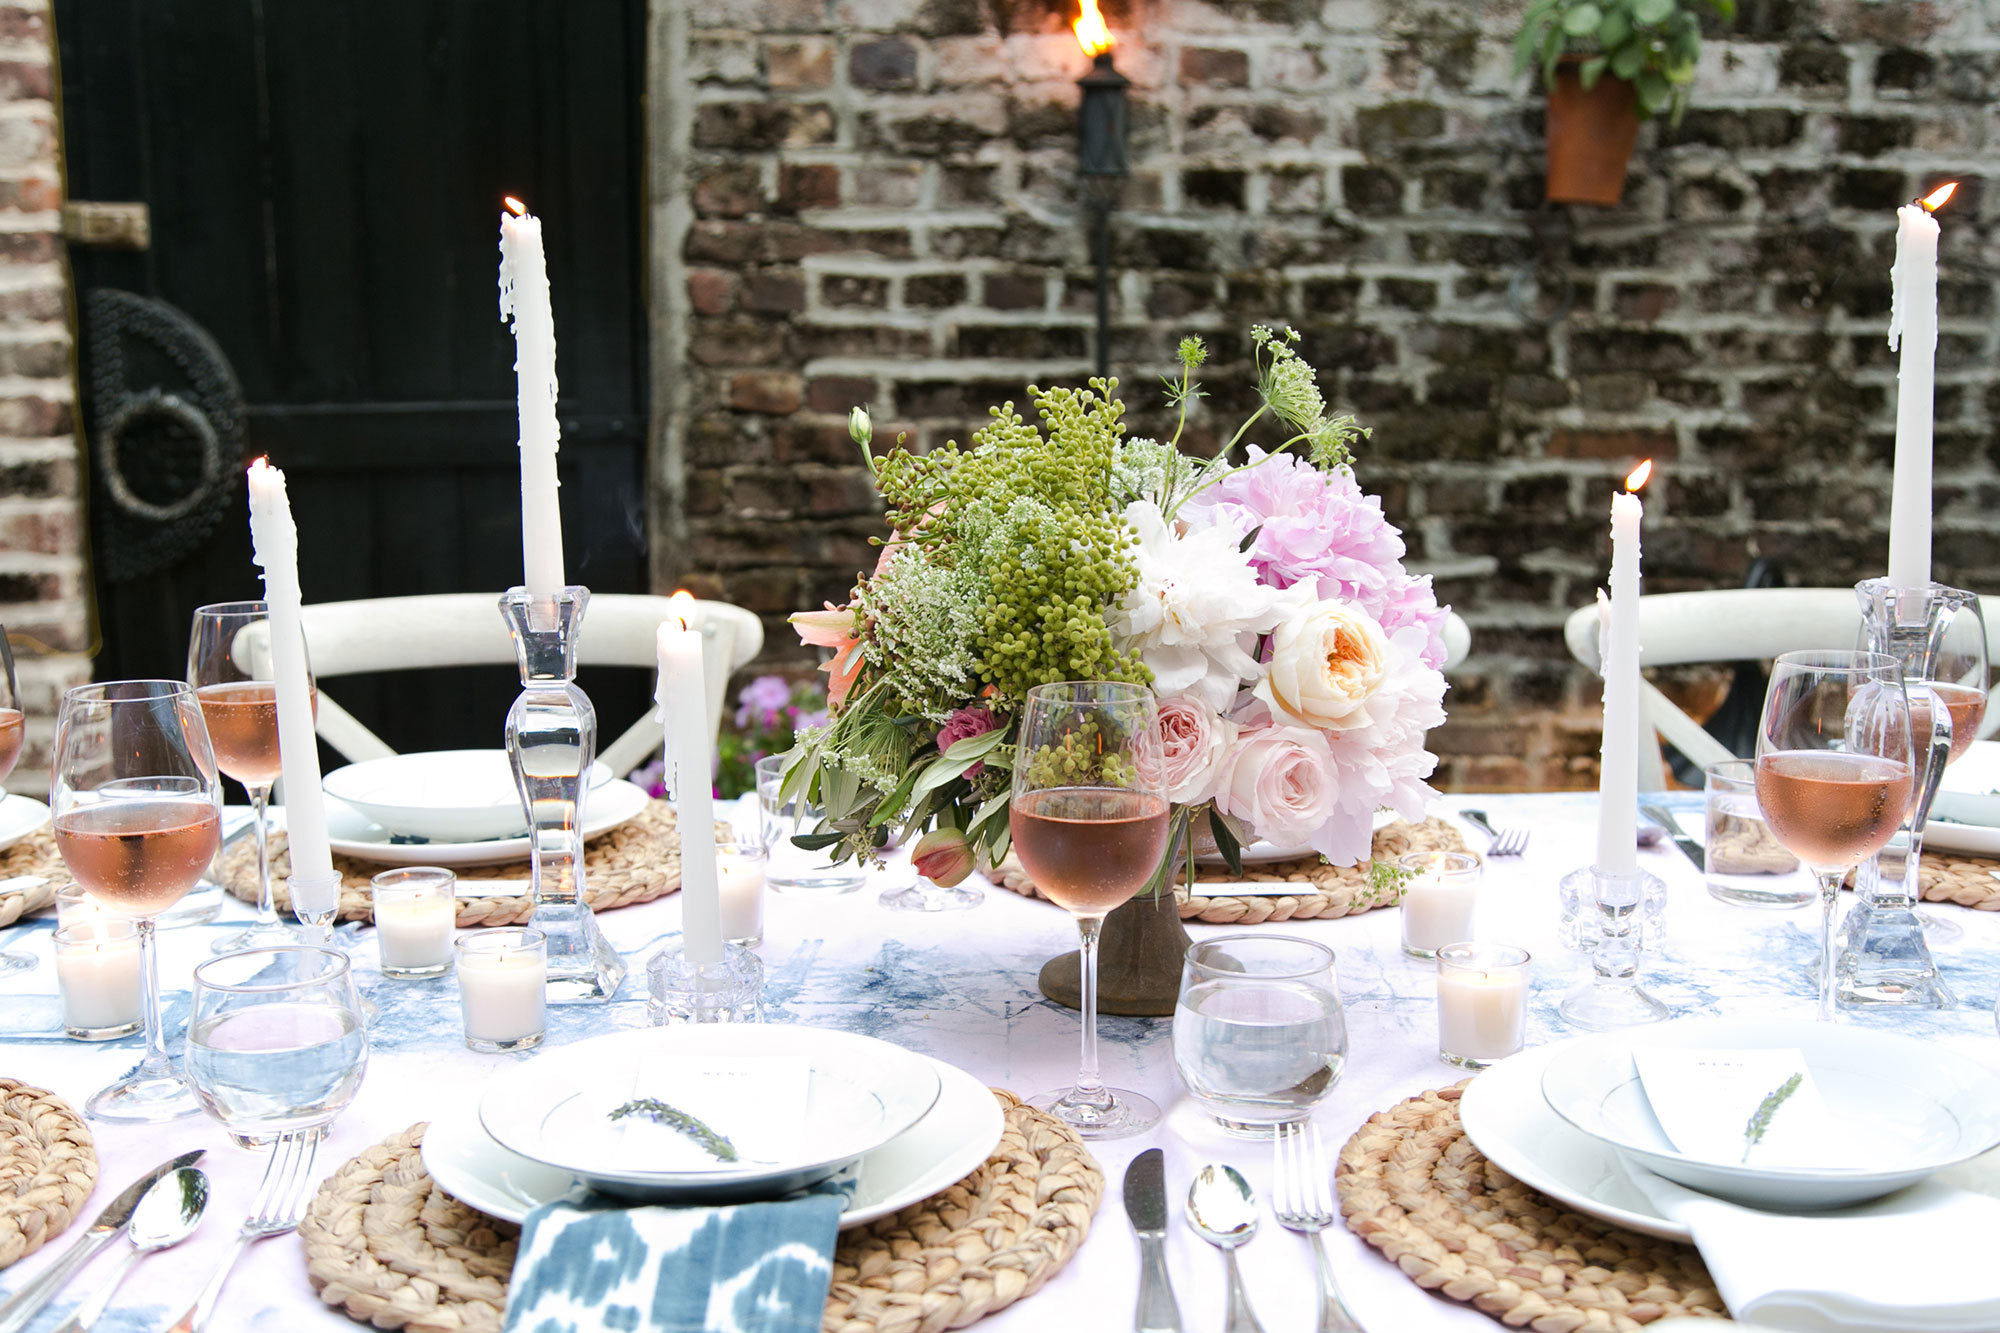 Theromantic tablescape of an outdoordinner party hosted by a group of Charleston creatives. Photography by Lucy Cuneo.